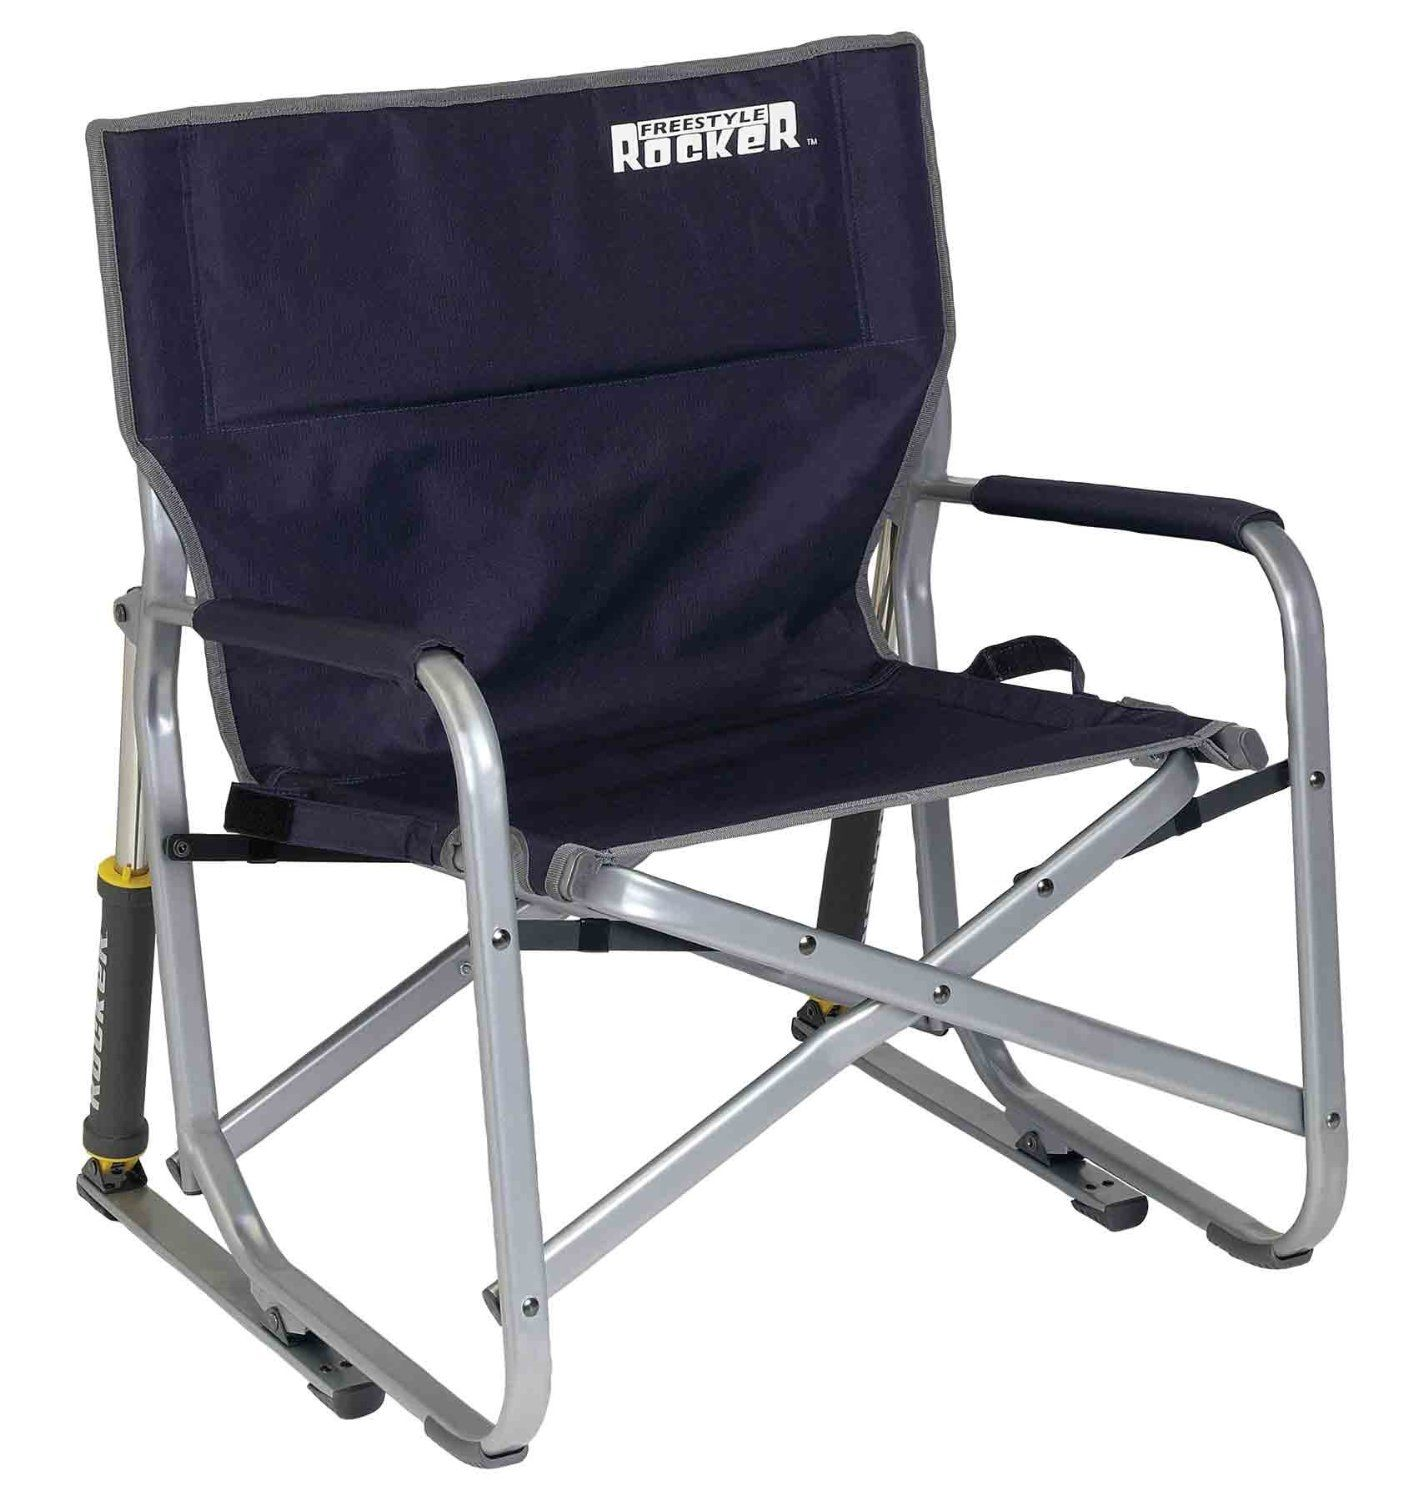 GCI Outdoor Freestyle Rocker Chair >>> You can find more